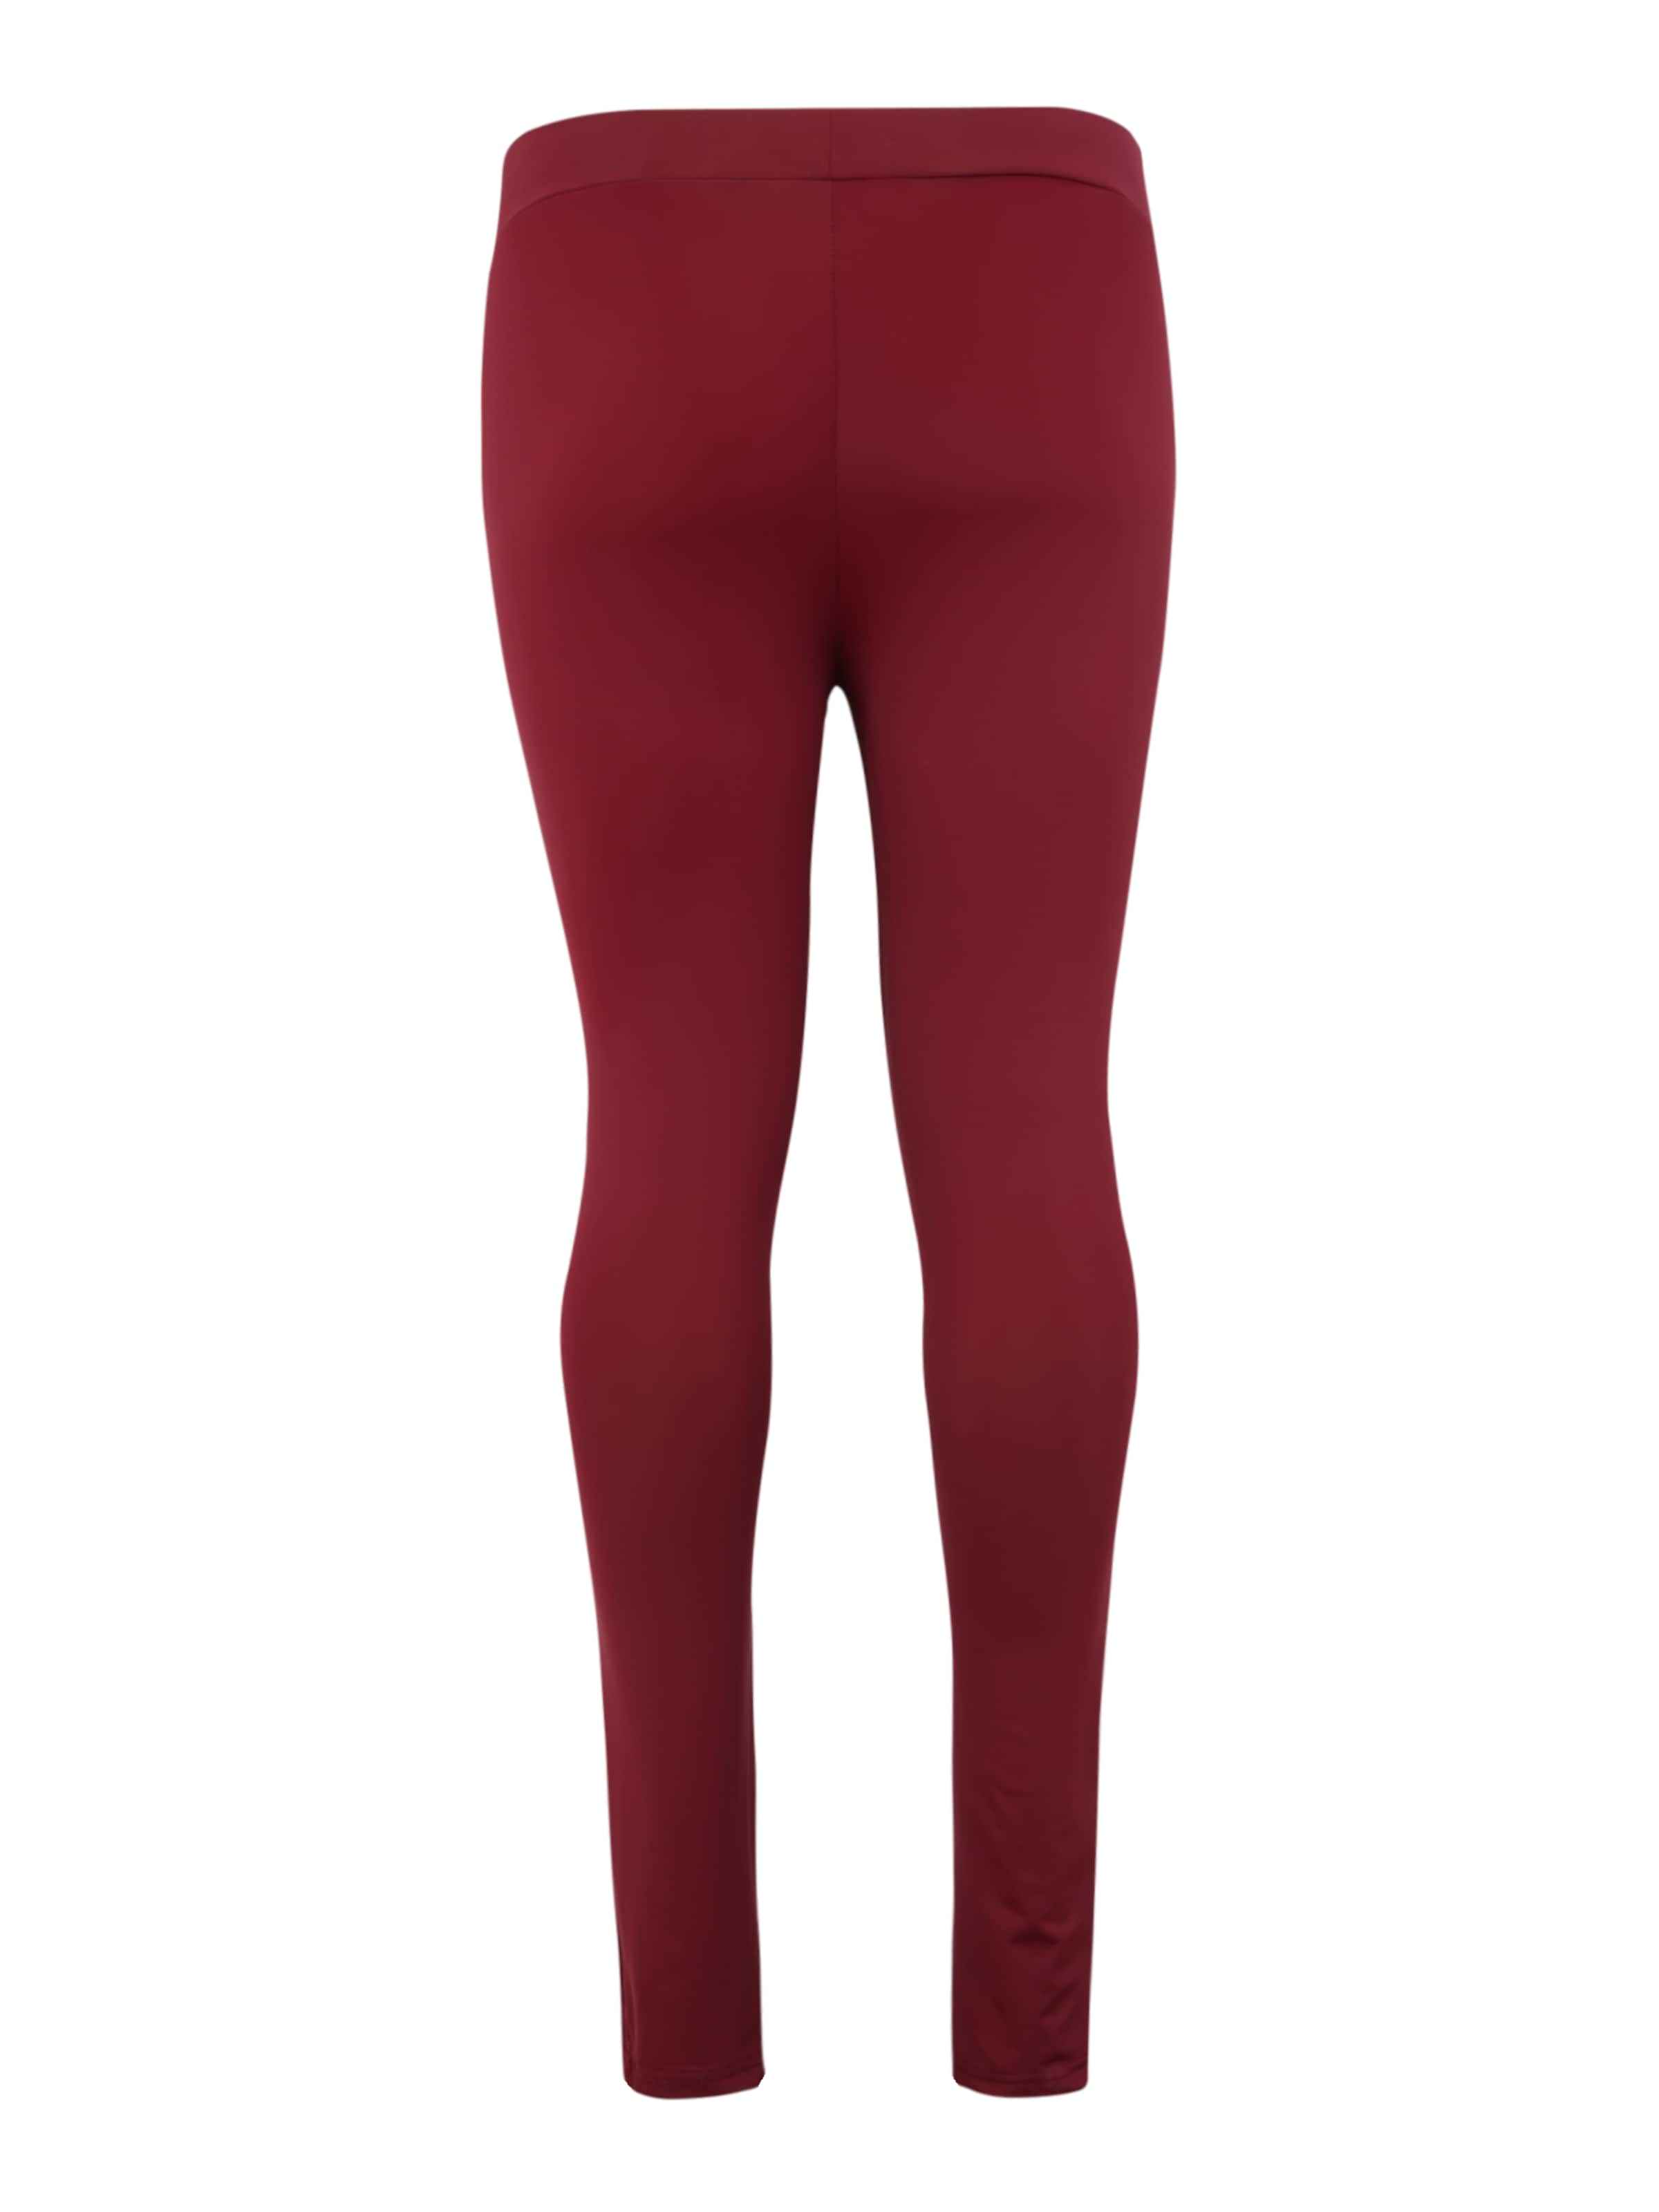 Tech Urban 'ladies Mesh Weinrot Curvy In Classics Legging' Hosen l1KJ3FcT